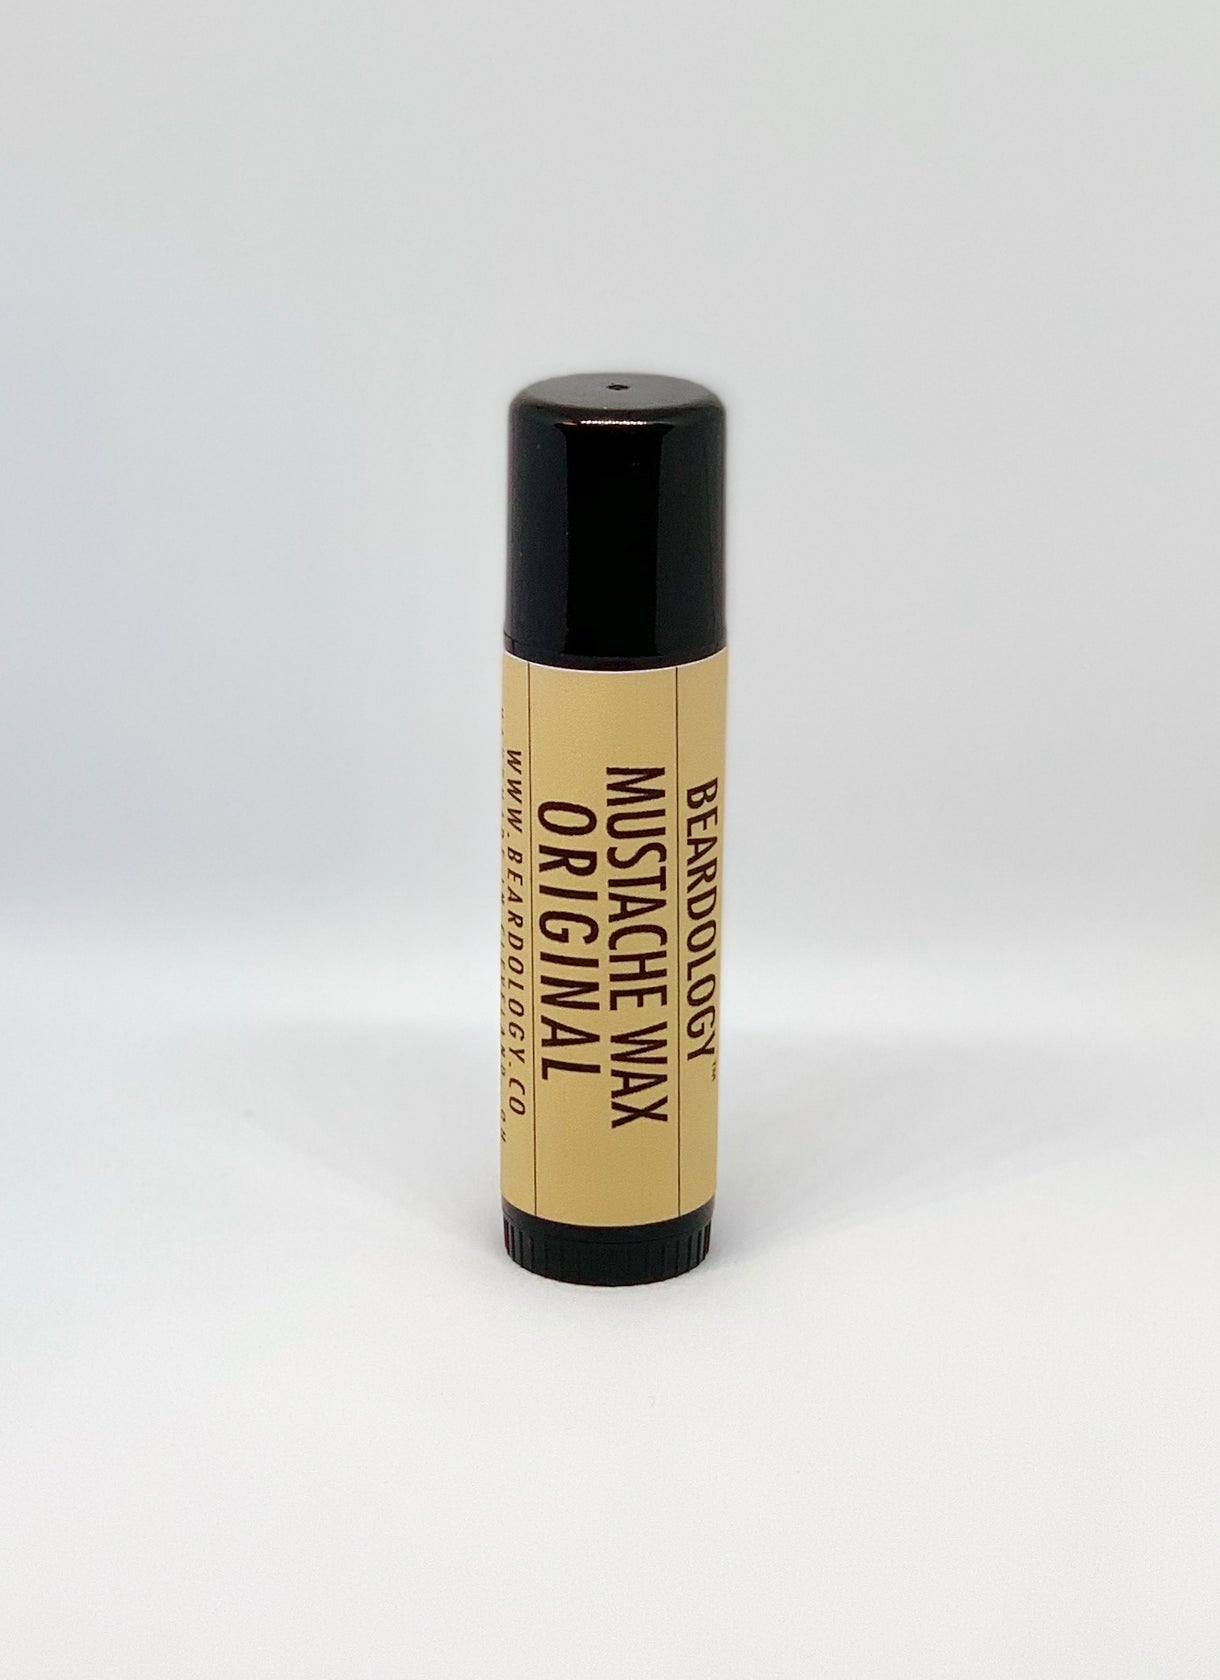 Mustache Wax - Limited Edition Tube